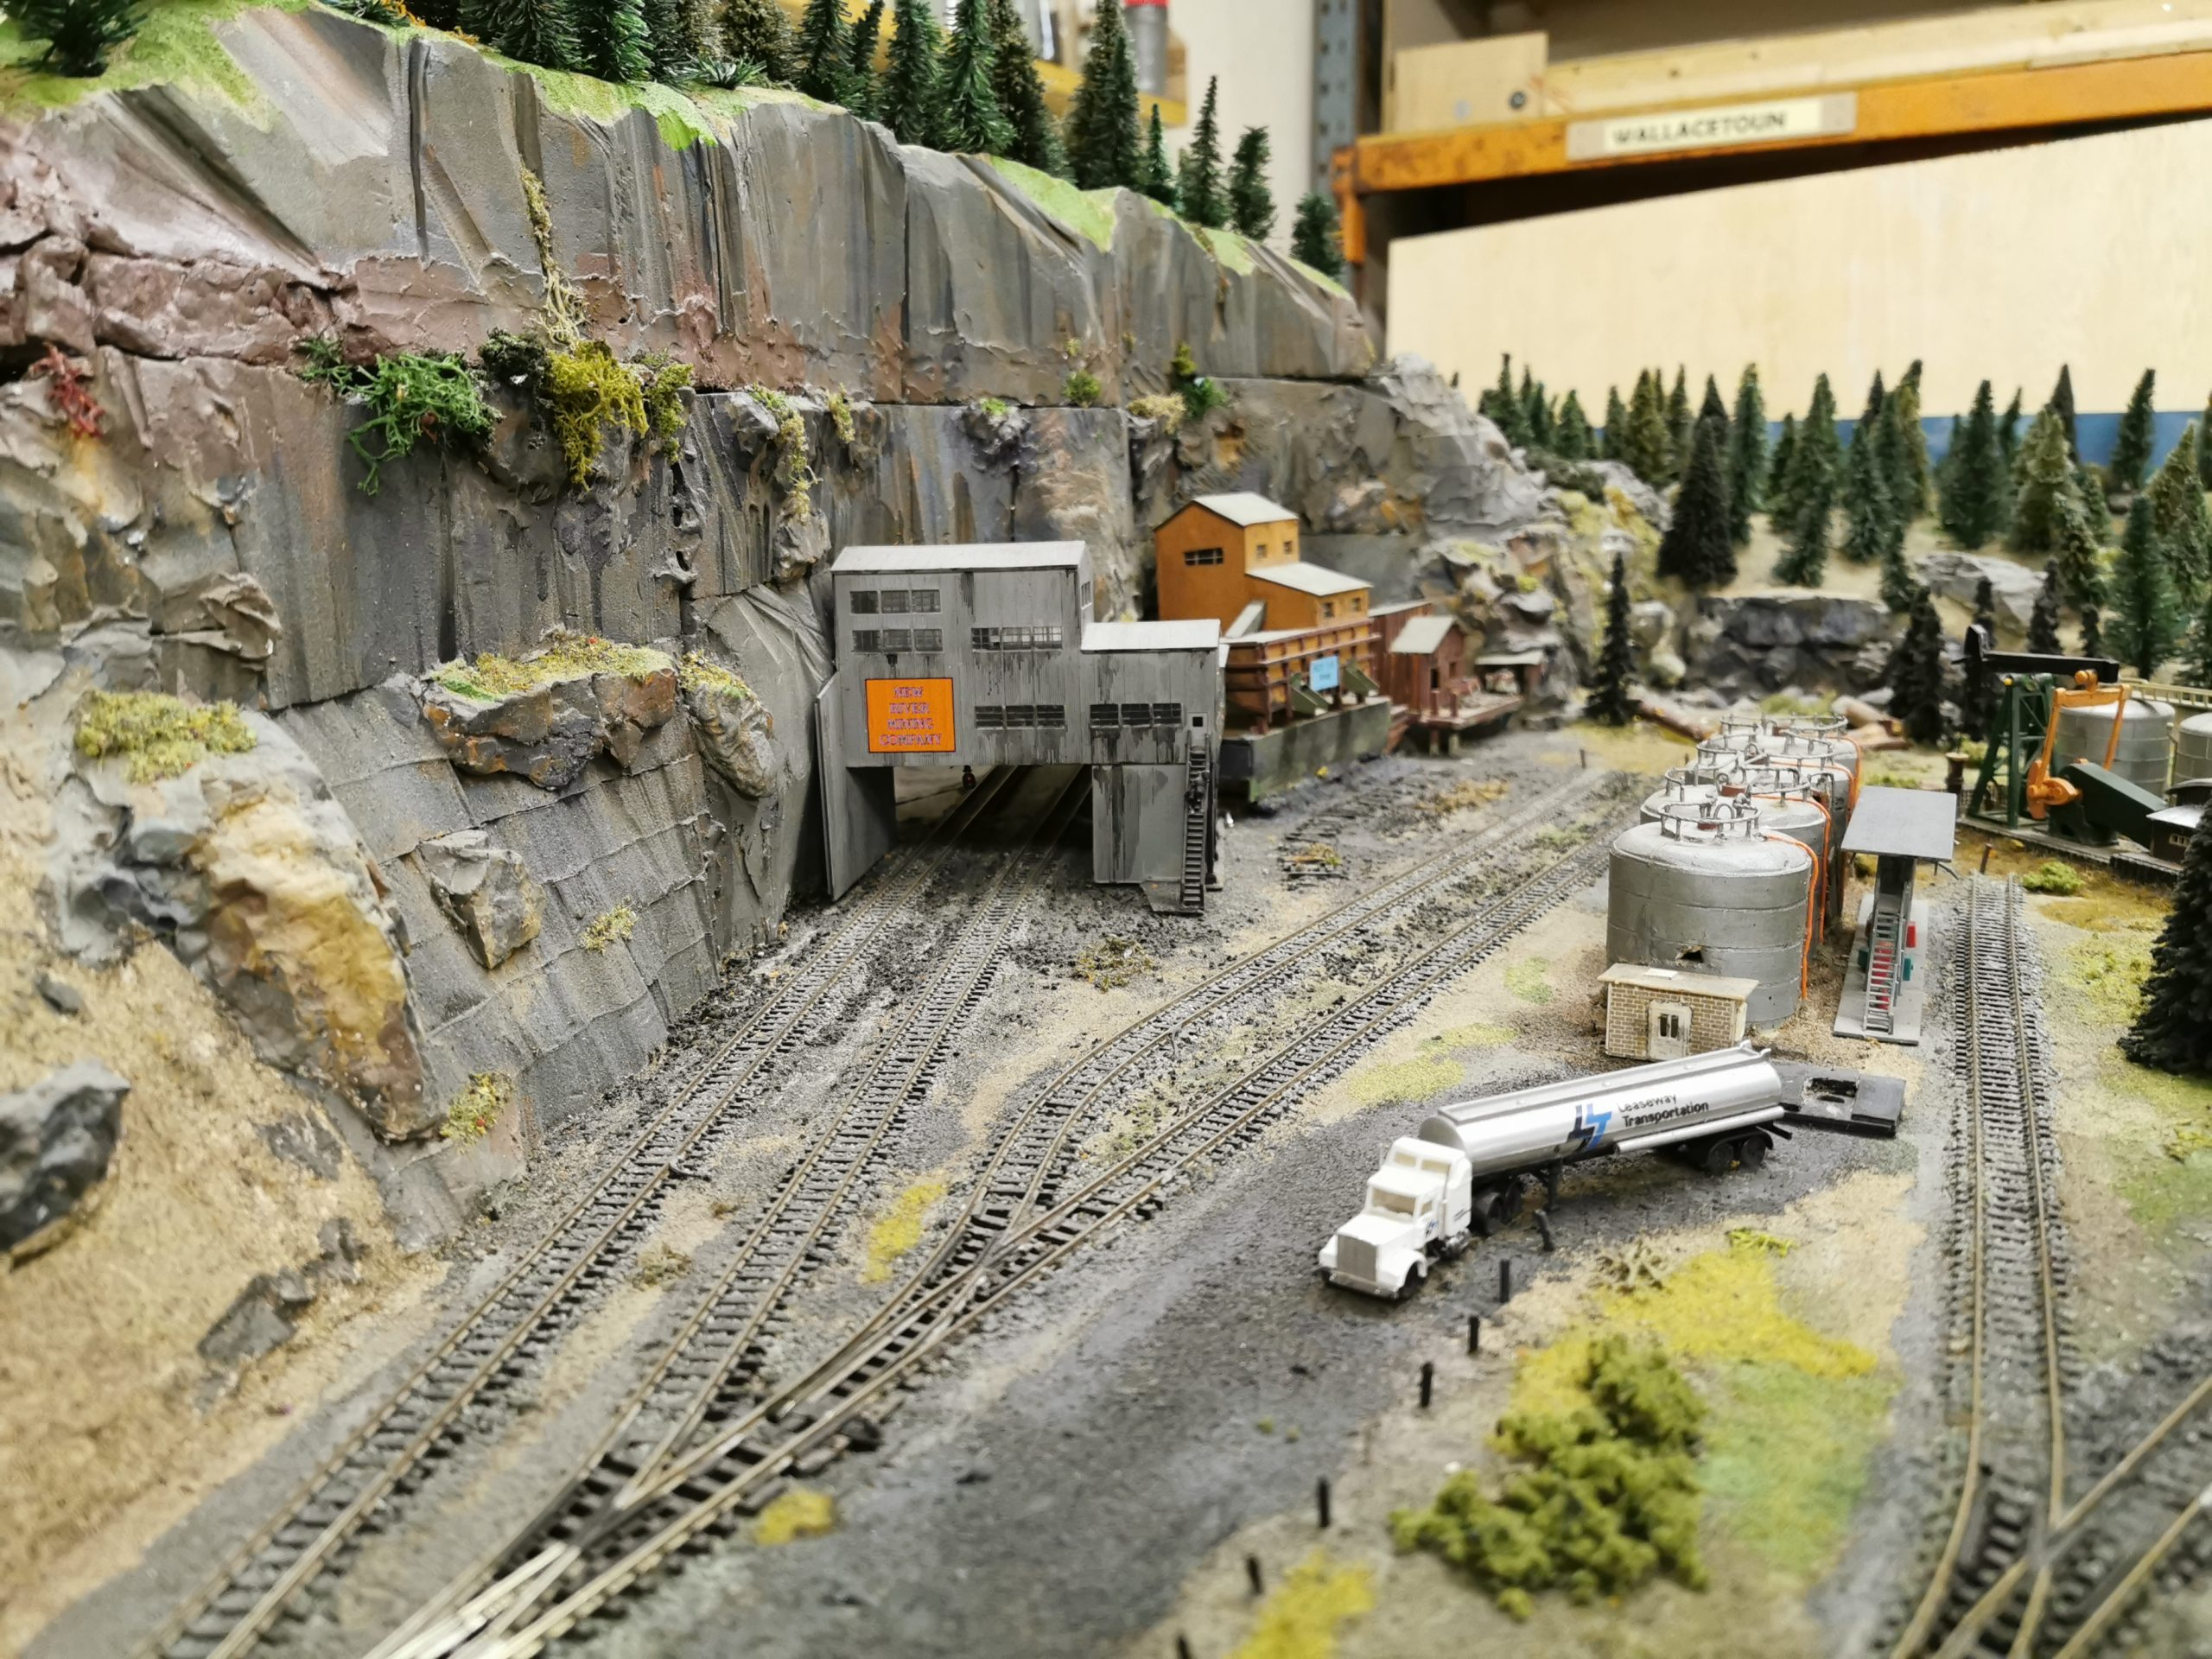 N scale layout in the Dundee Model Railway Club